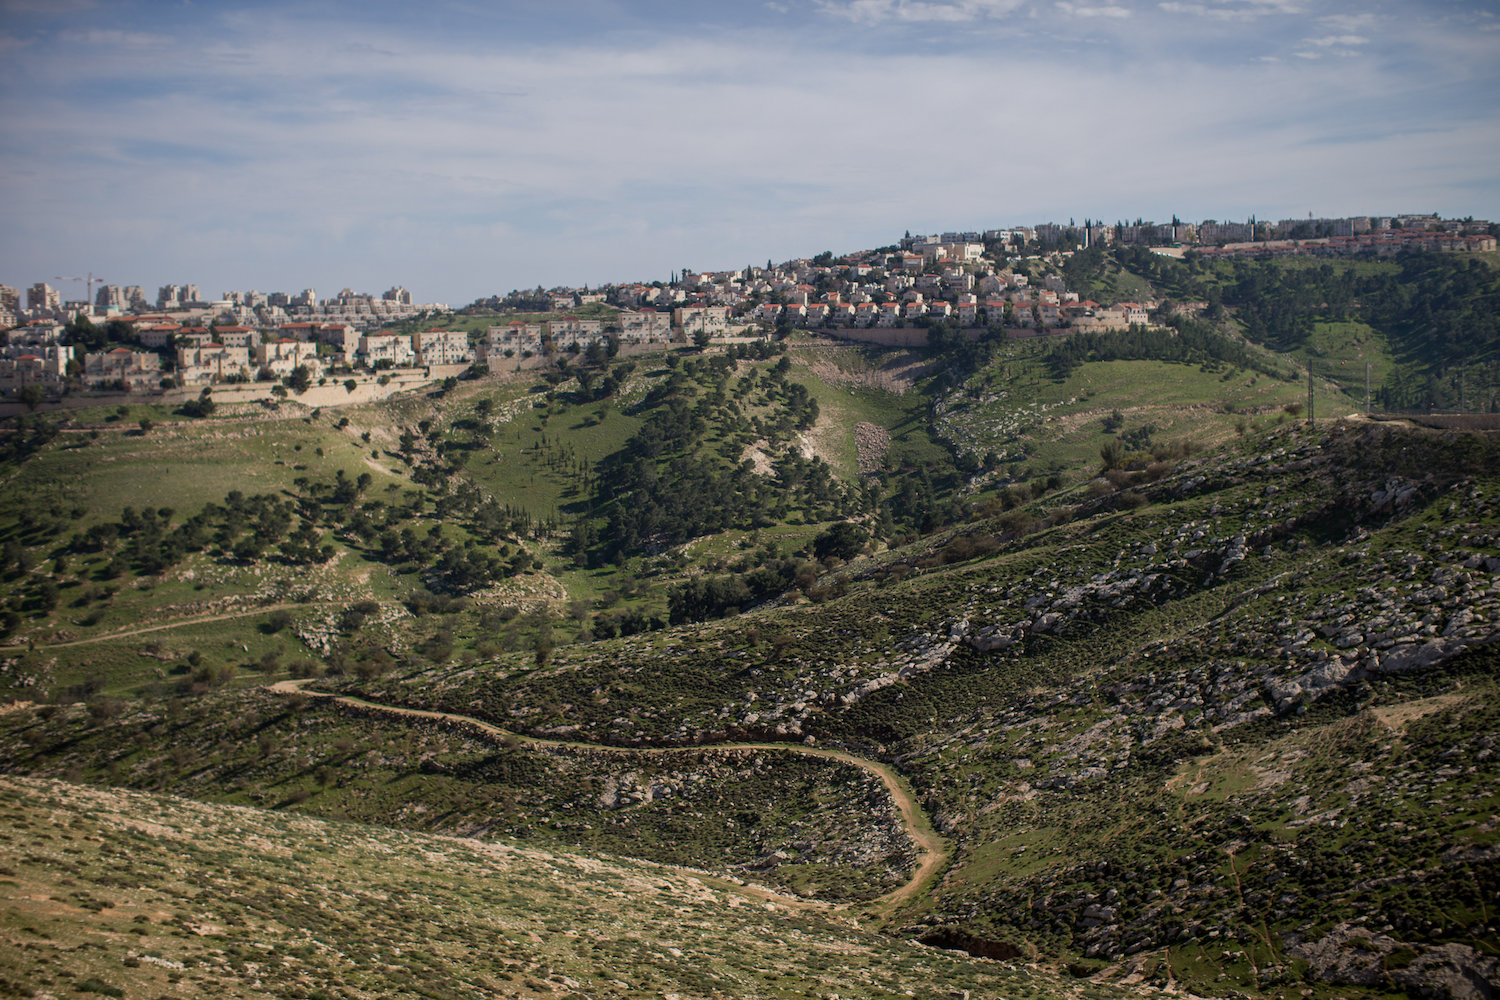 View of the Israeli settlement of Ma'ale Adumin and E1, occupied West Bank. (Yonatan Sindel/Flash90)